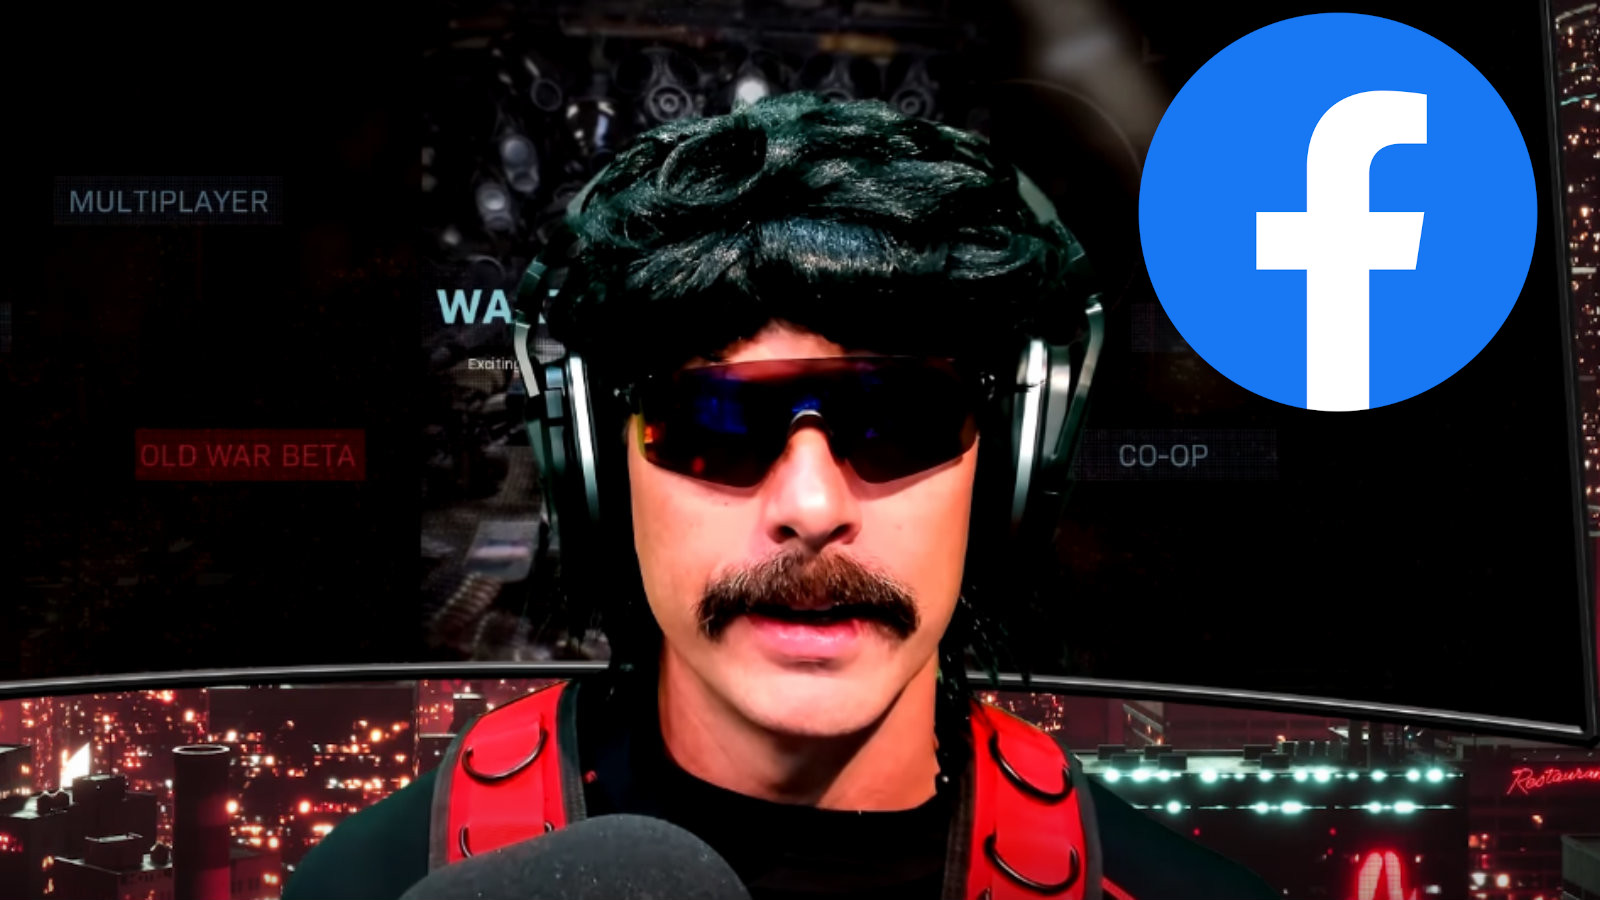 Dr Disrespect could go to Facebook